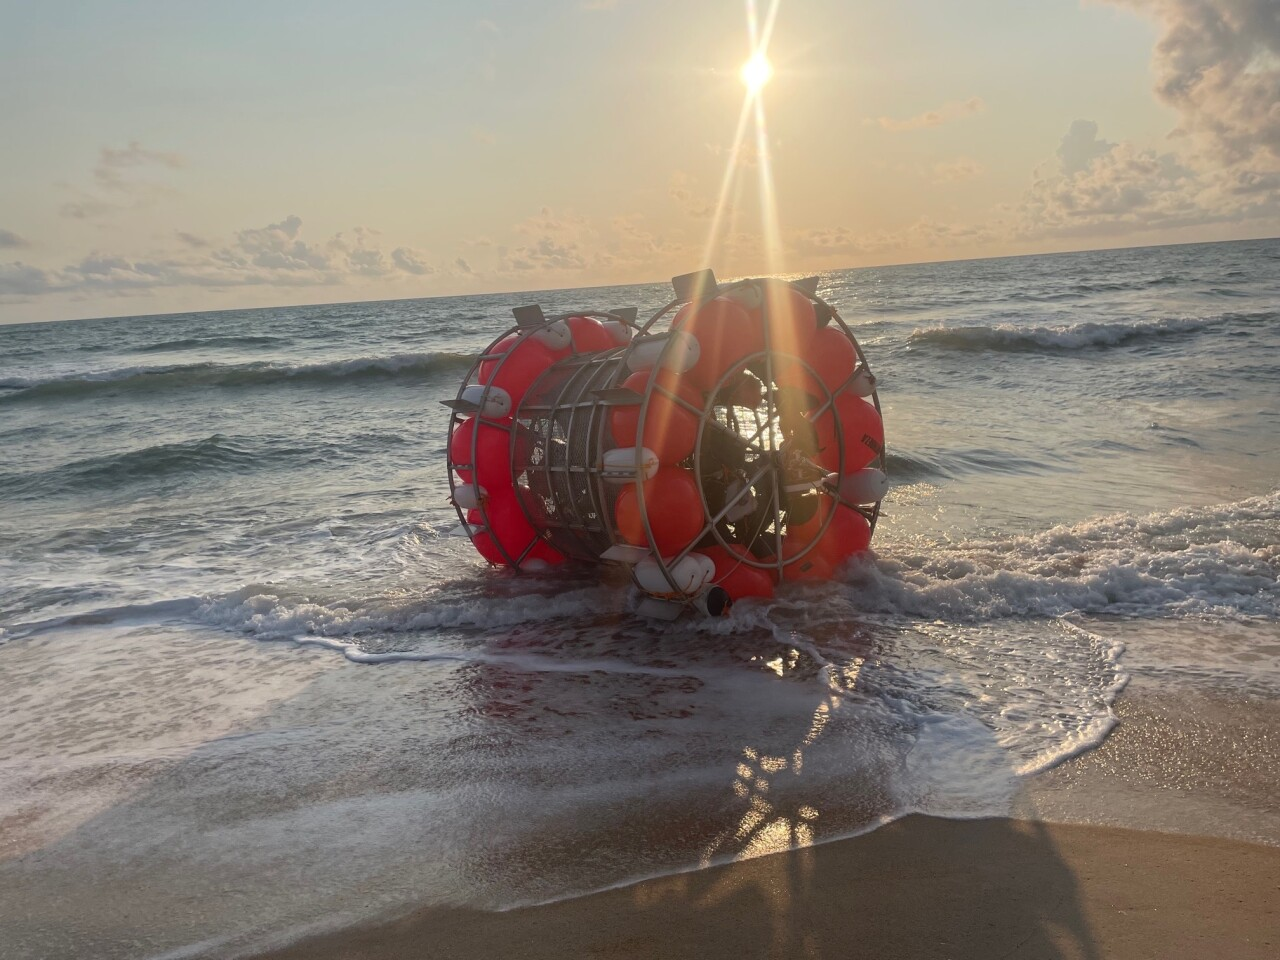 A man in a cylindrical floating contraption washed ashore in Florida in an apparent attempt to walk on water to New York.